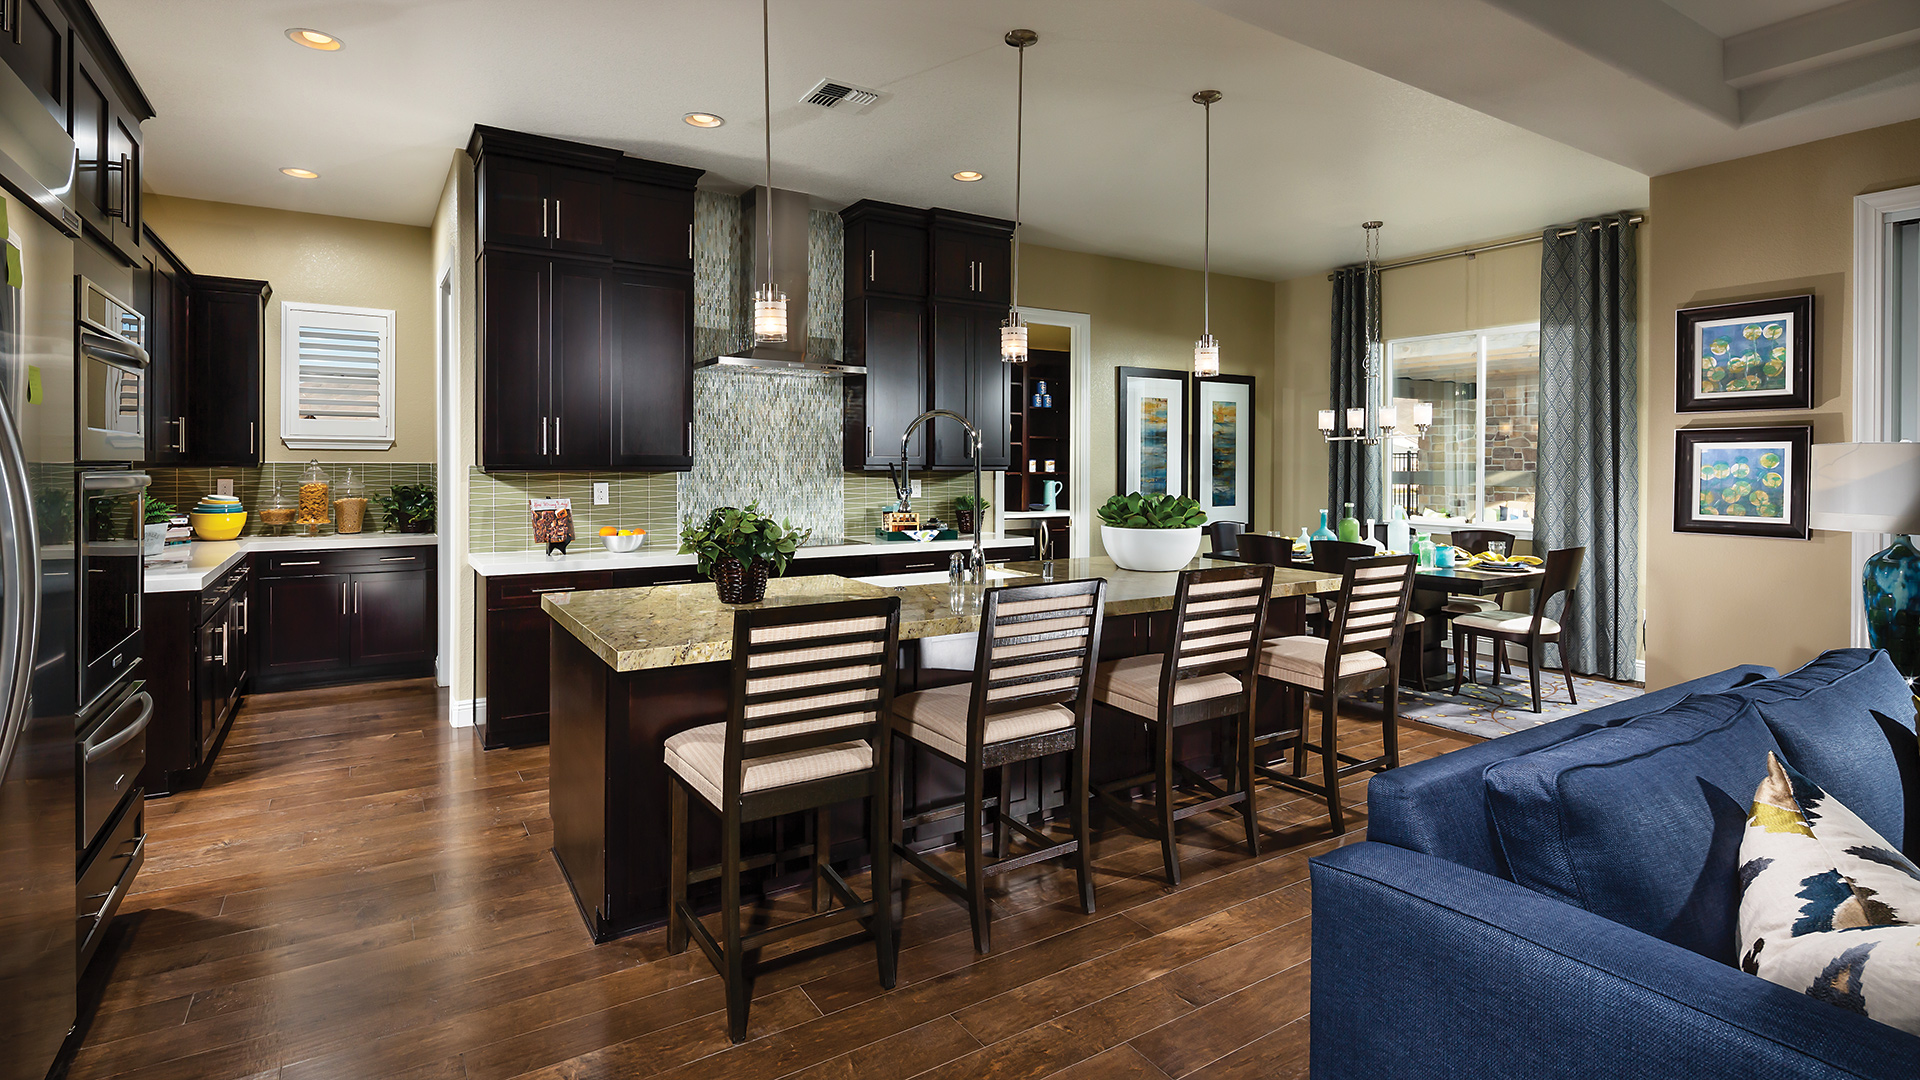 Kitchen Model Of The Trapani Home Design Available In Reno, NV